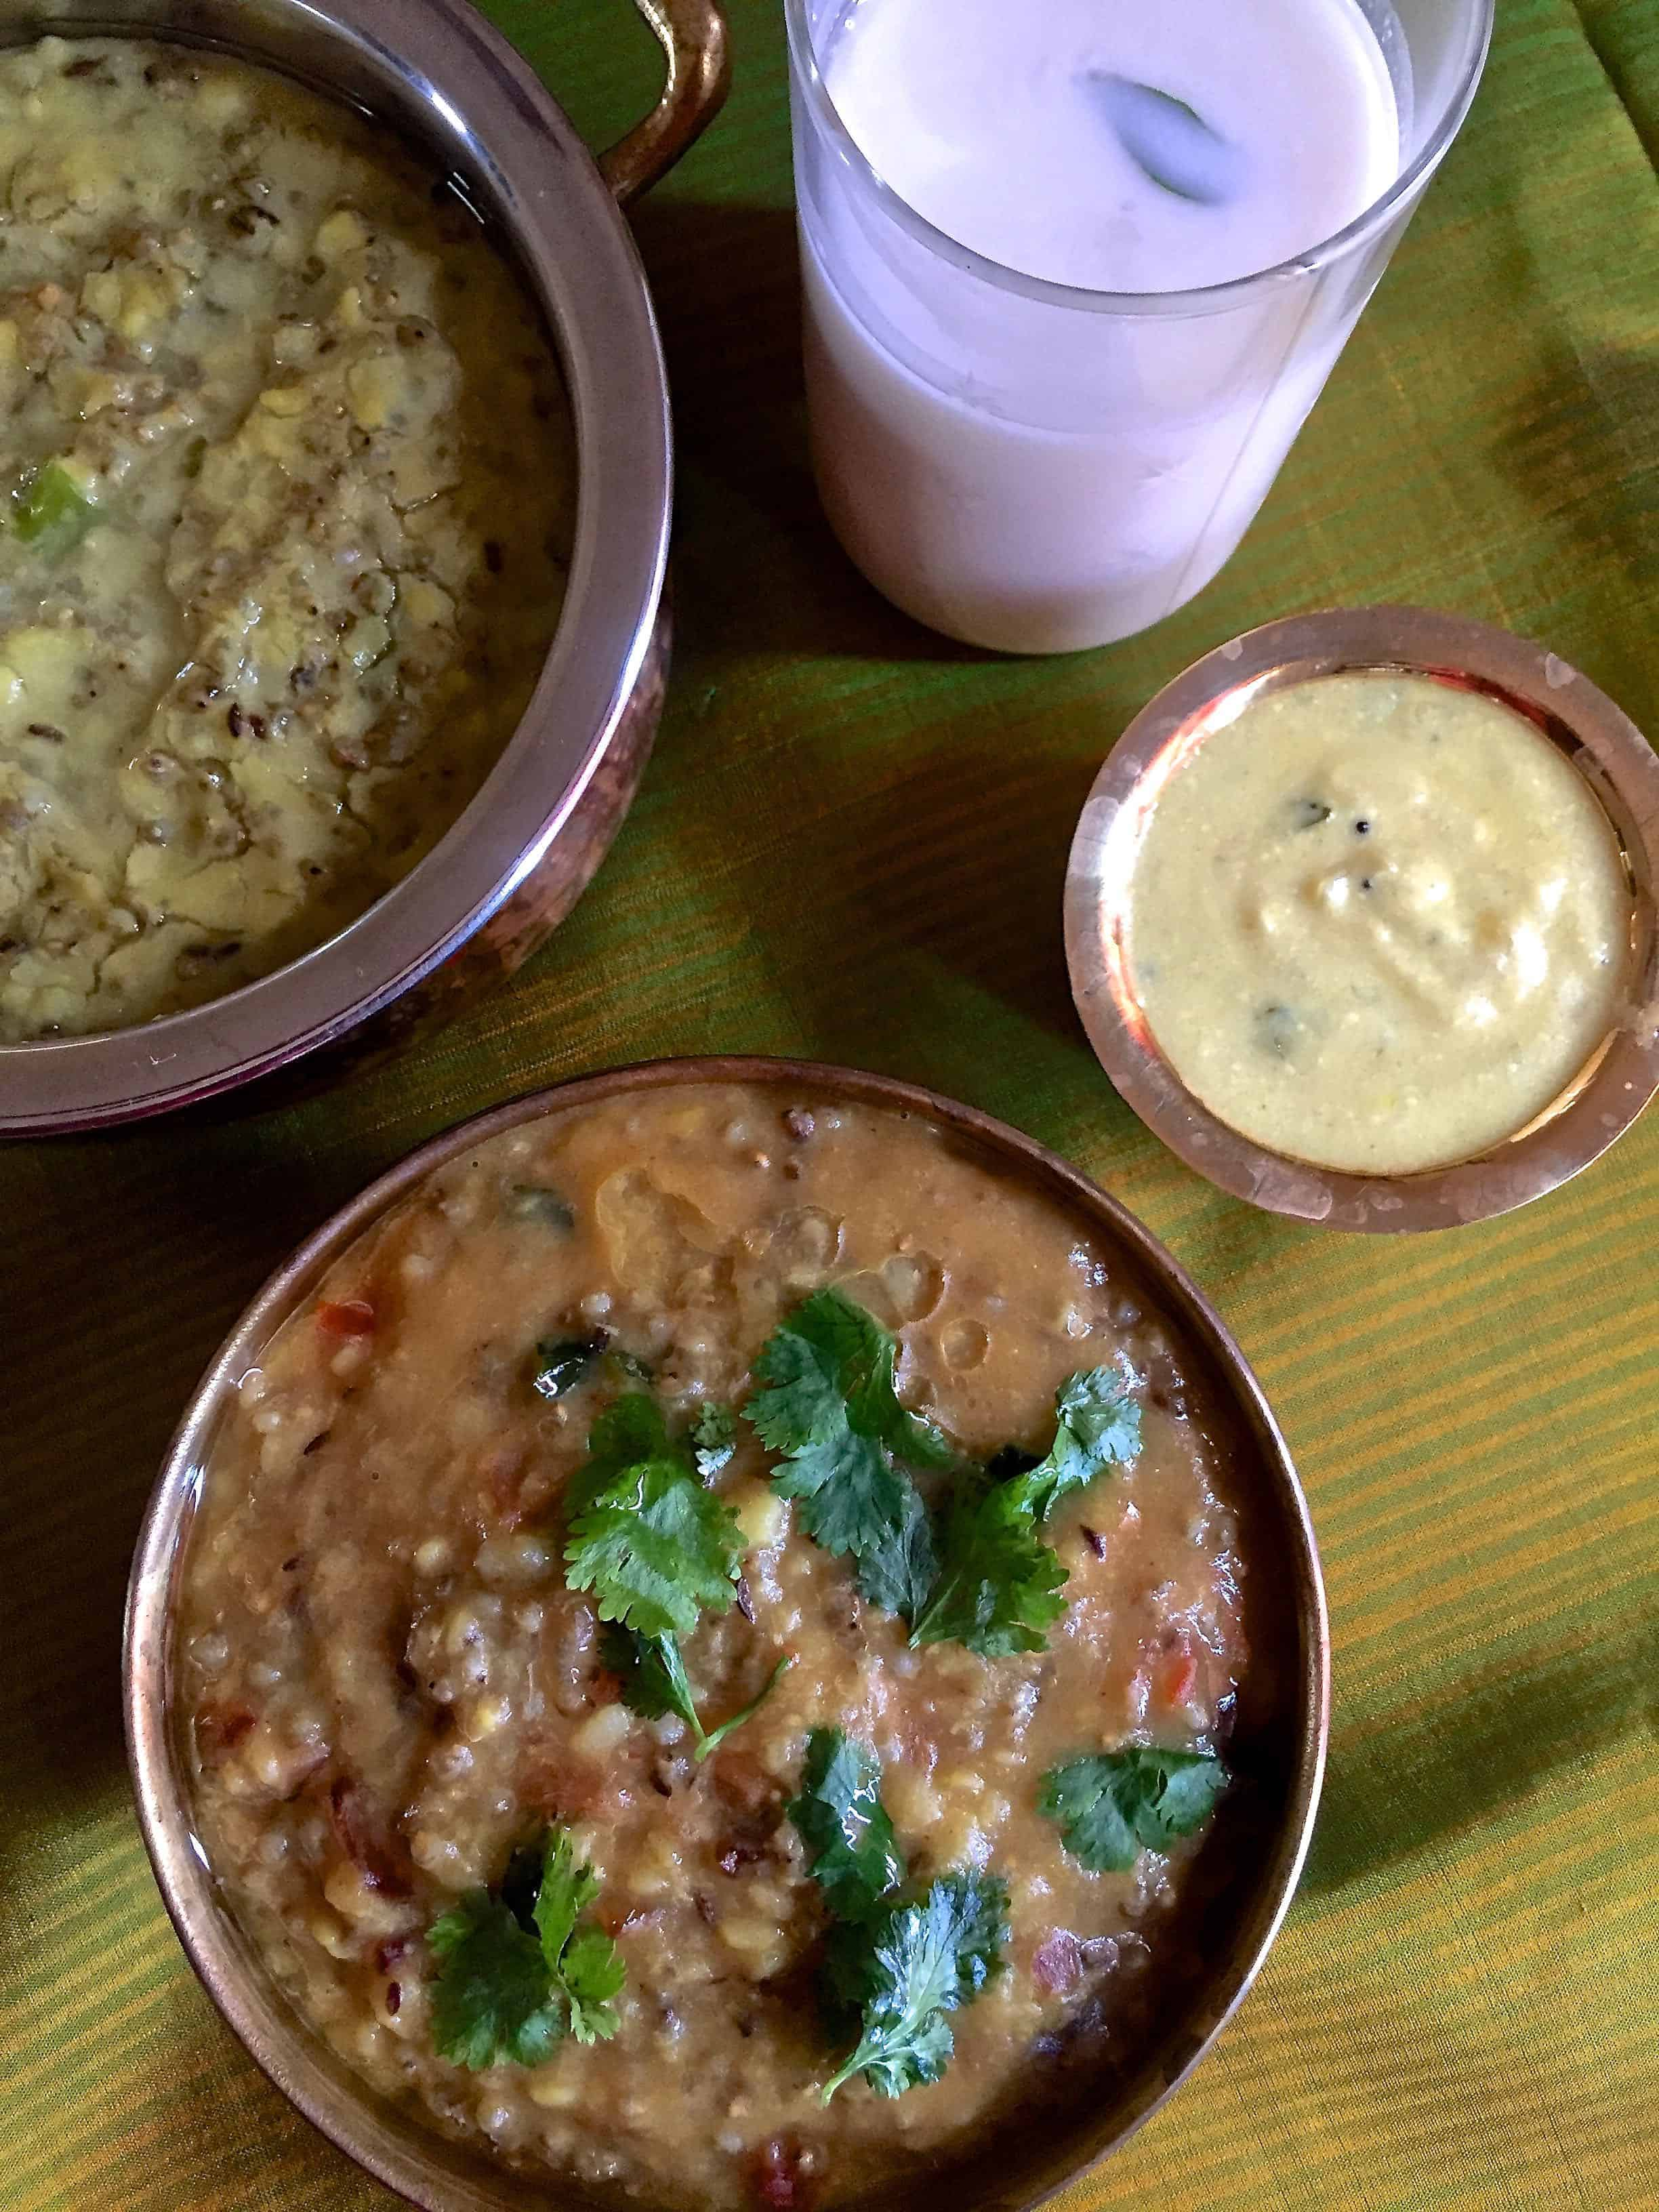 A bowl of greenish yellow cooked millets and lentils with a glass of buttermilk and the edge of an orange book at one corner